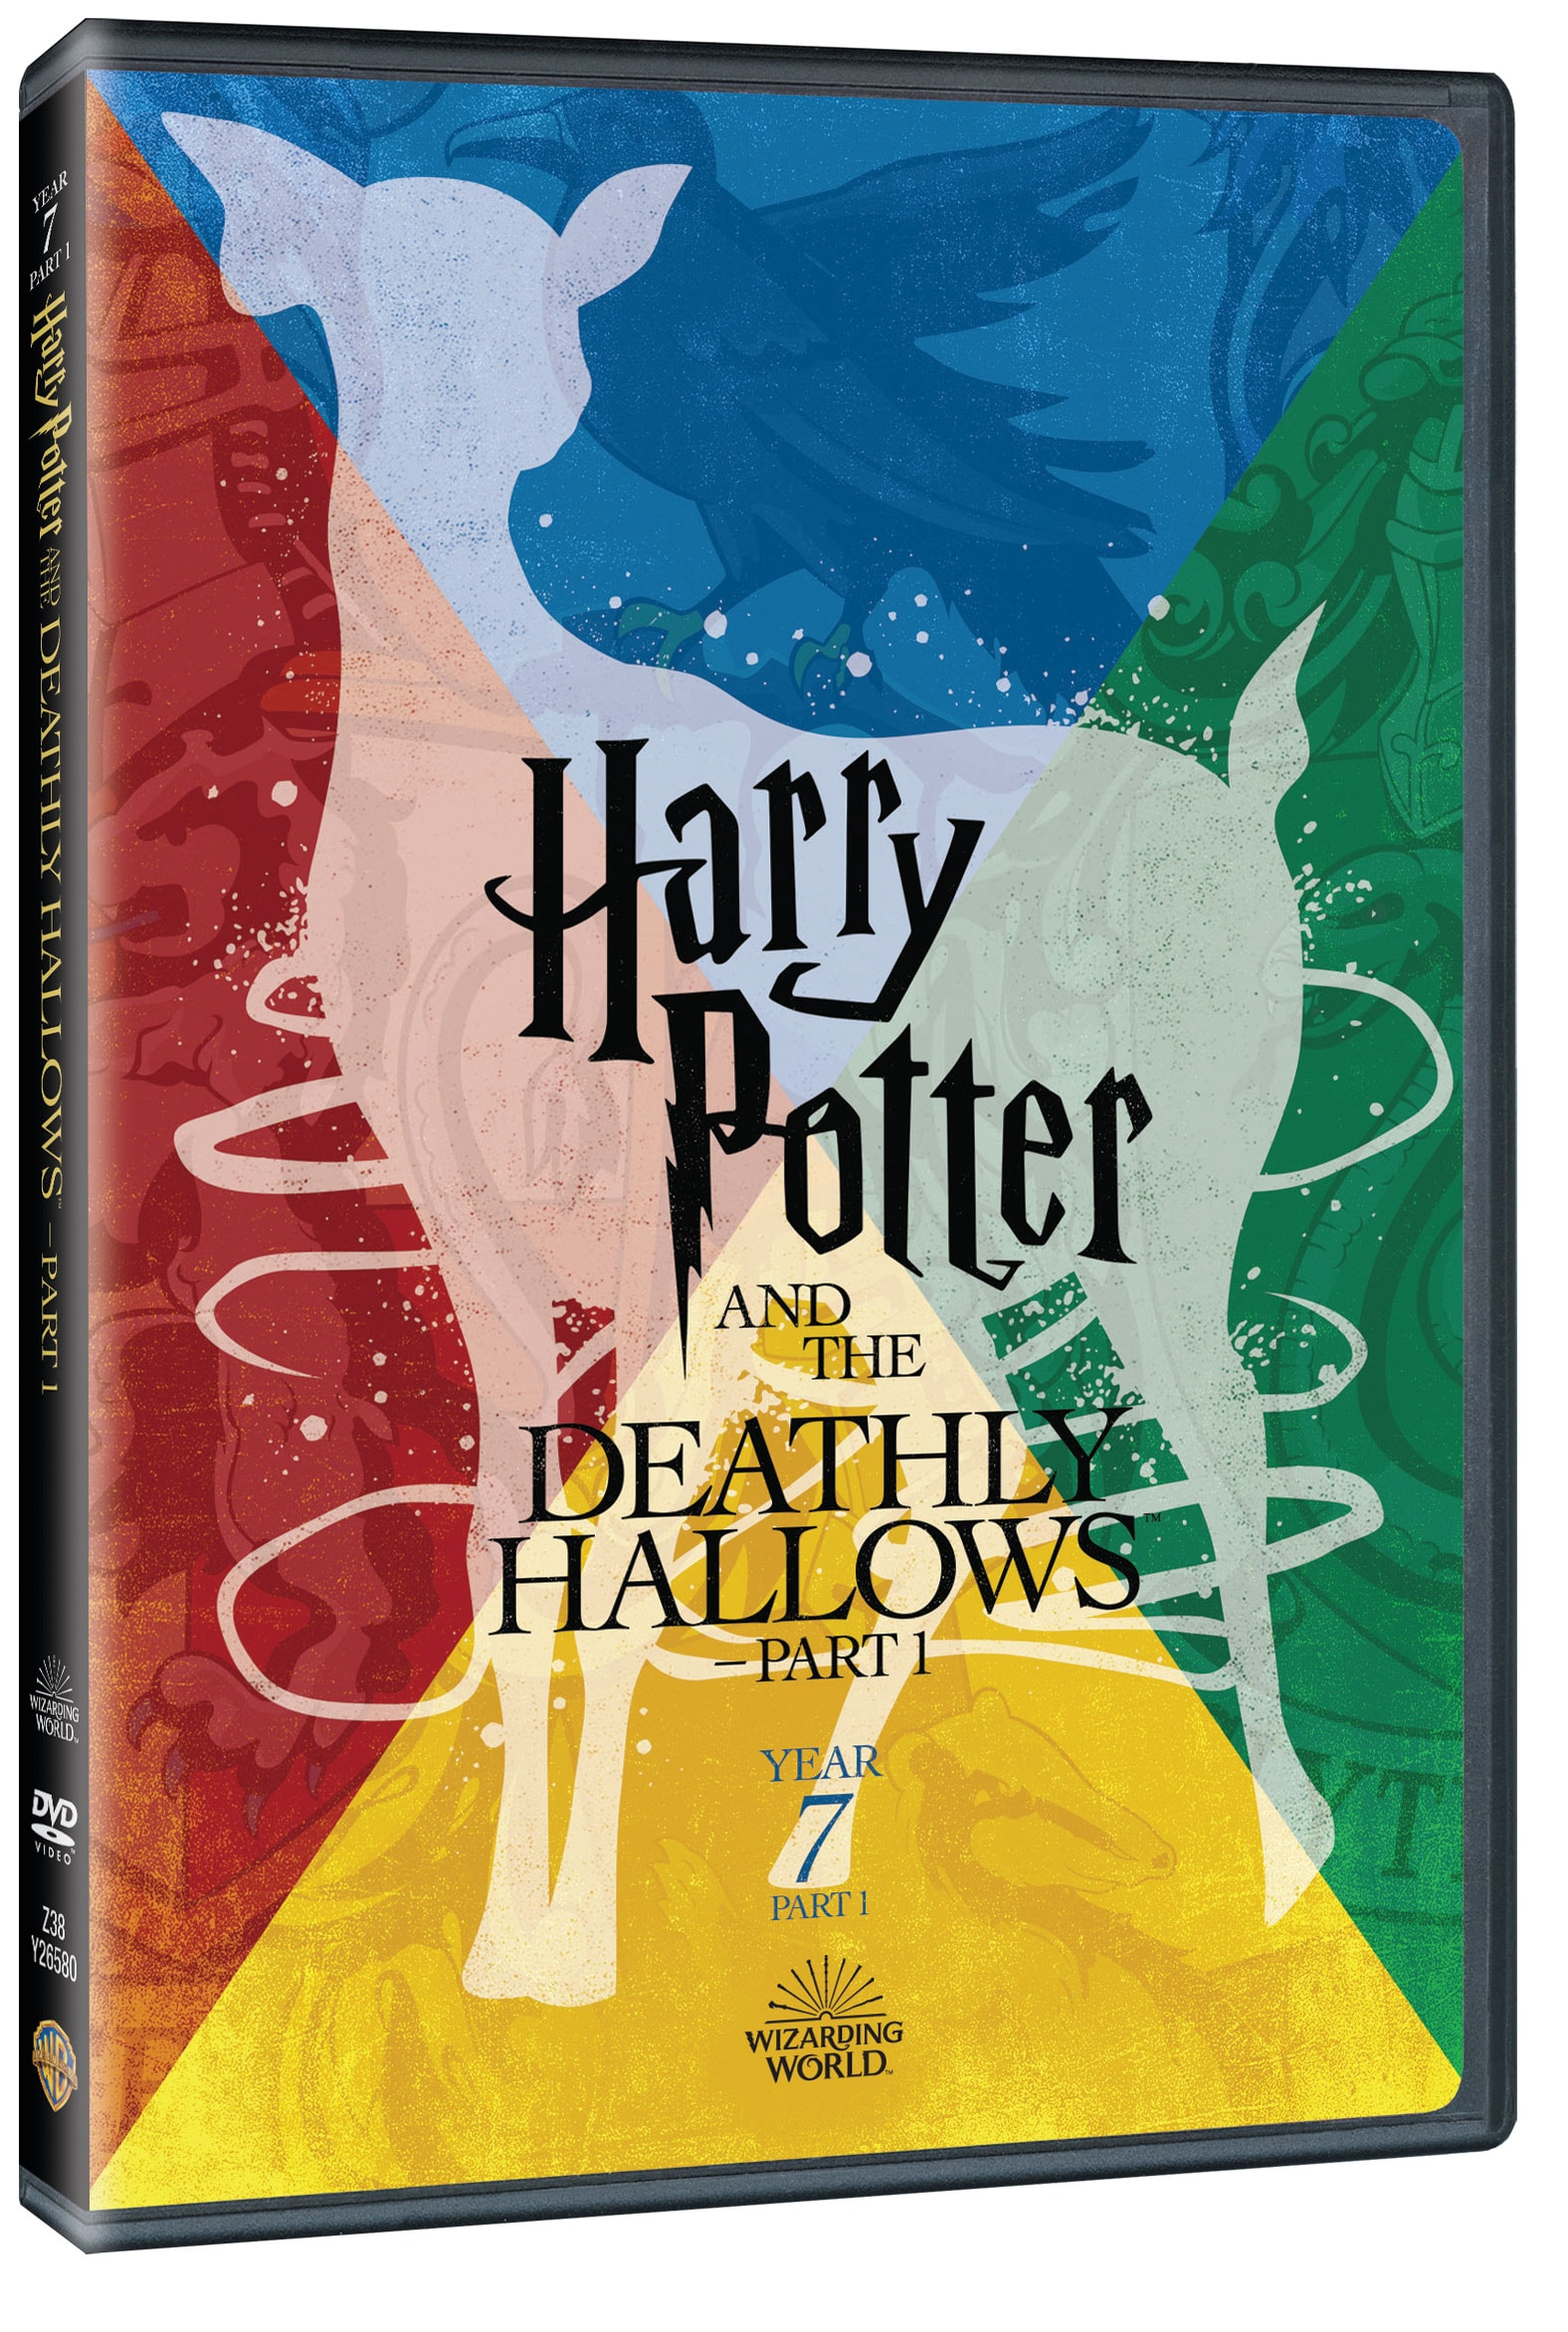 HARRY POTTER & DEATHLY HALLOWS-PART 1